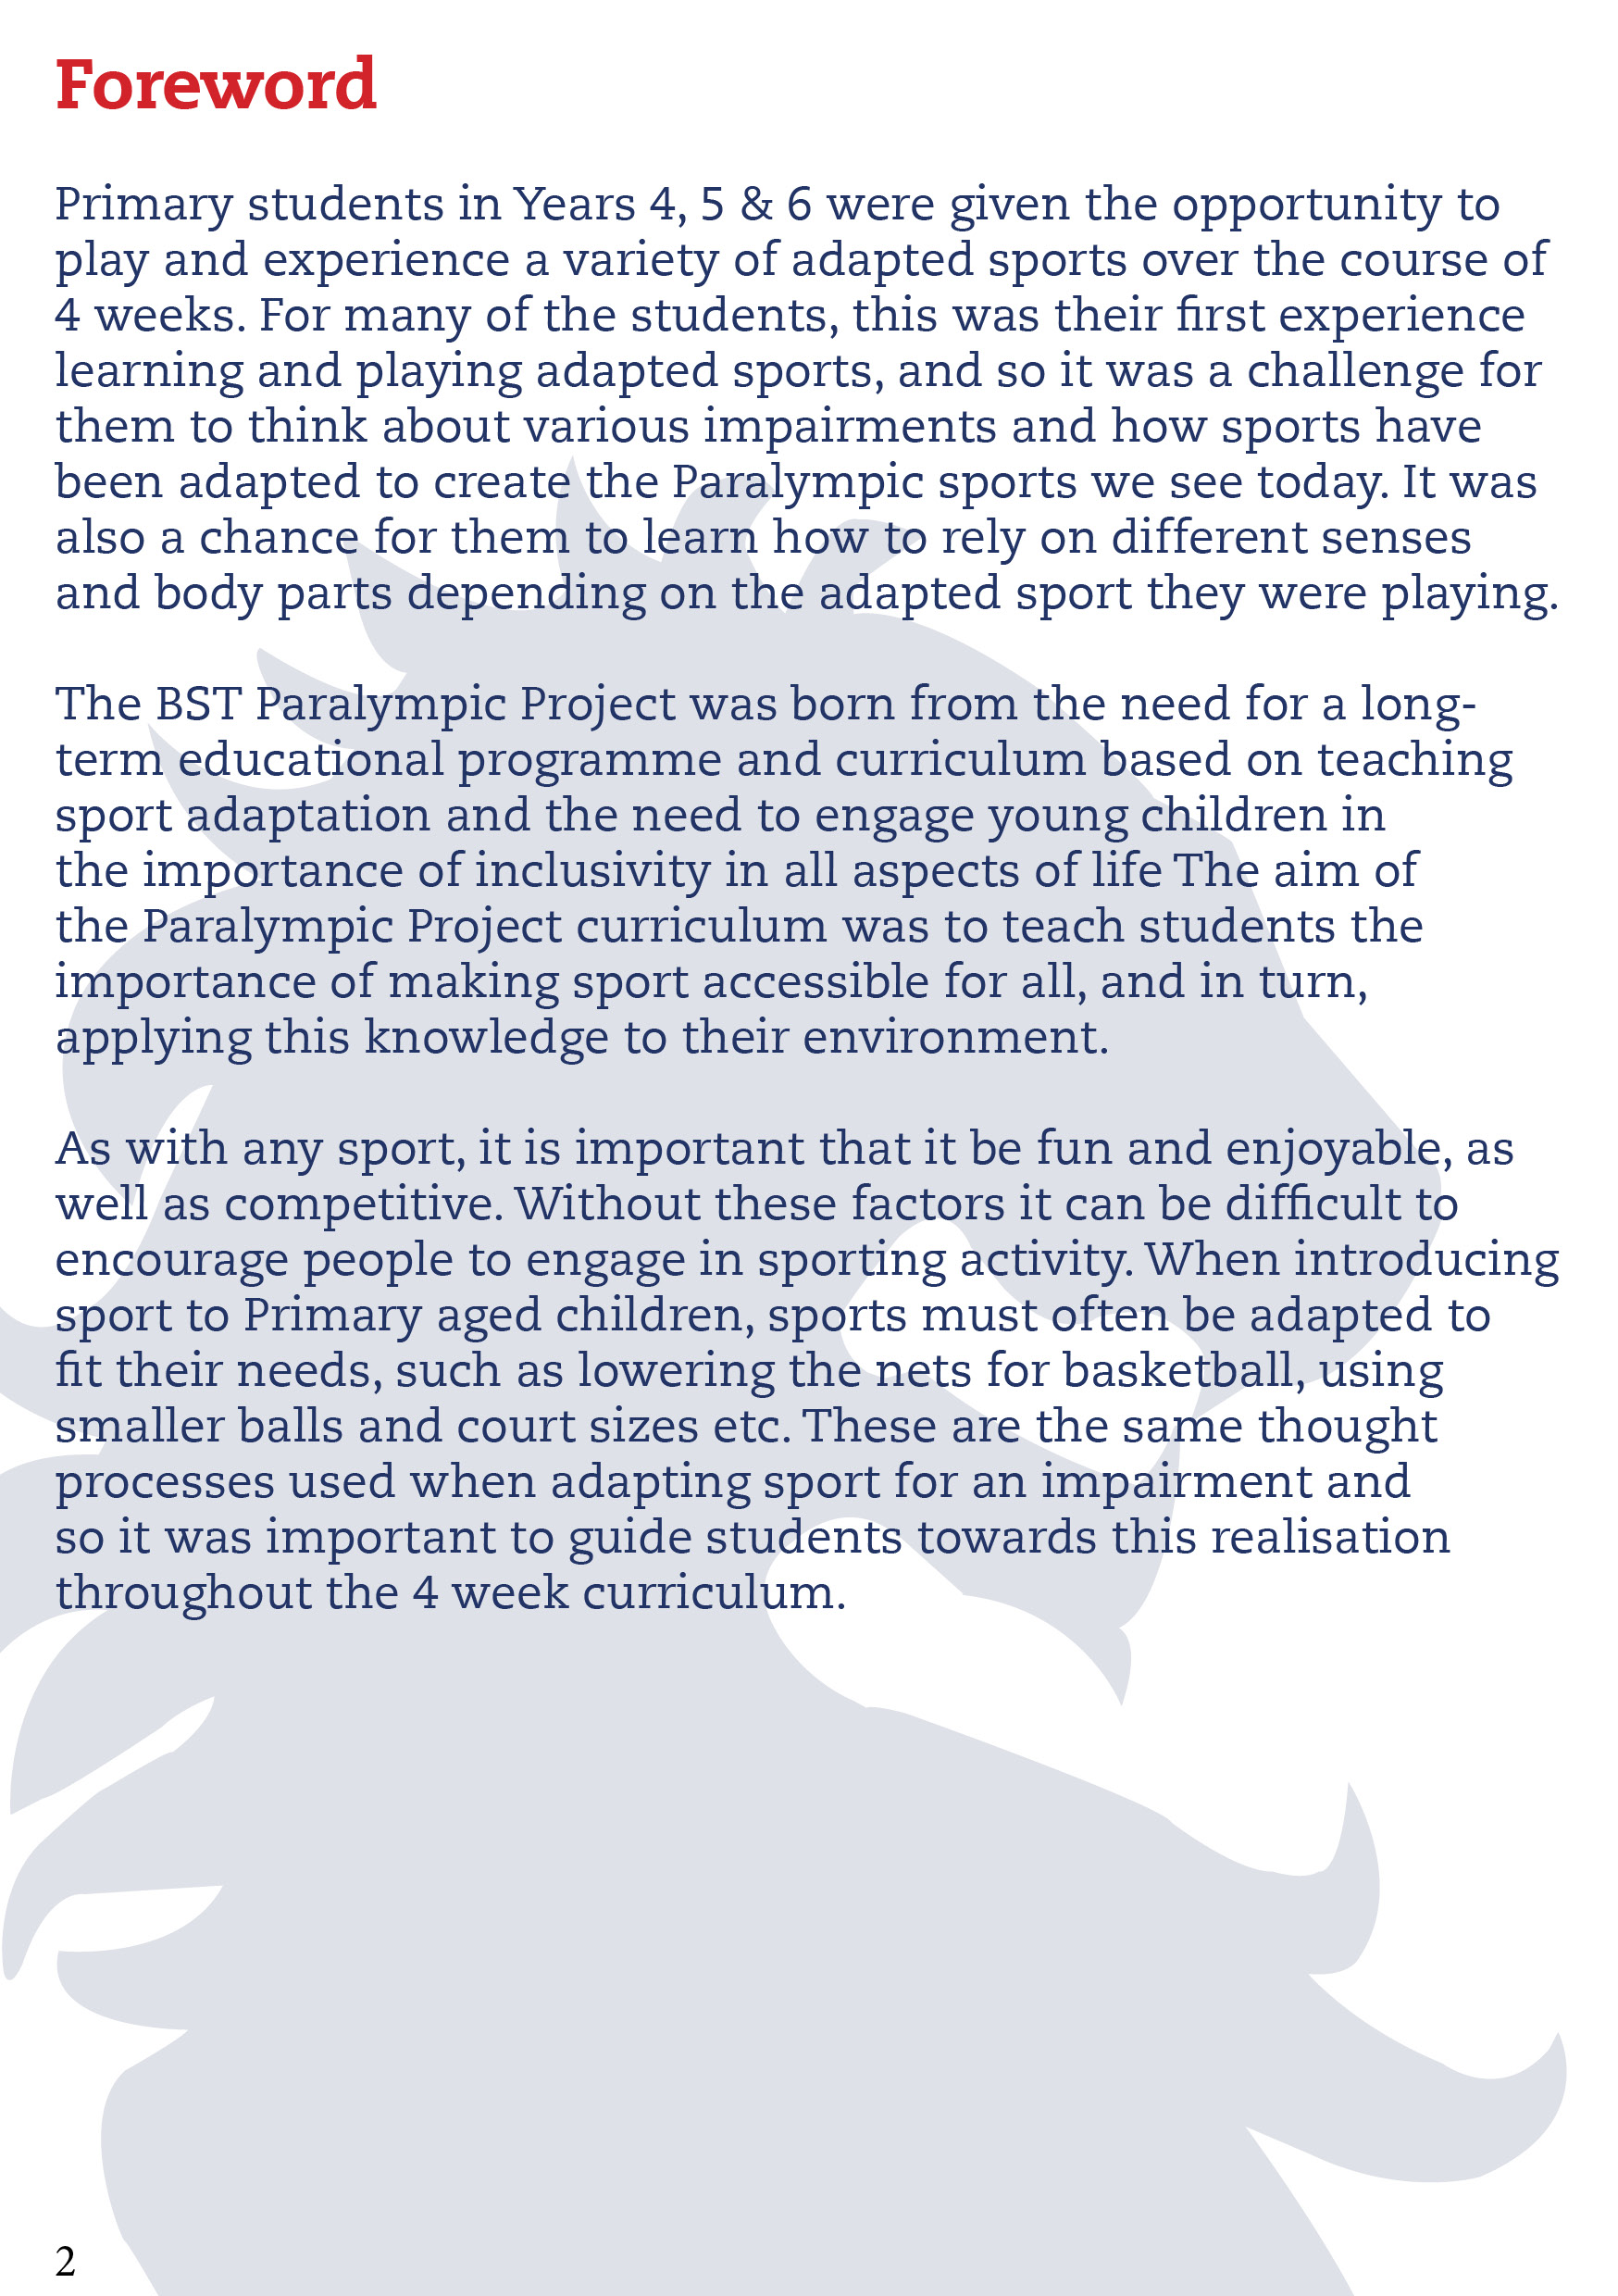 Primary Paralympic Project Curriculum - The British School